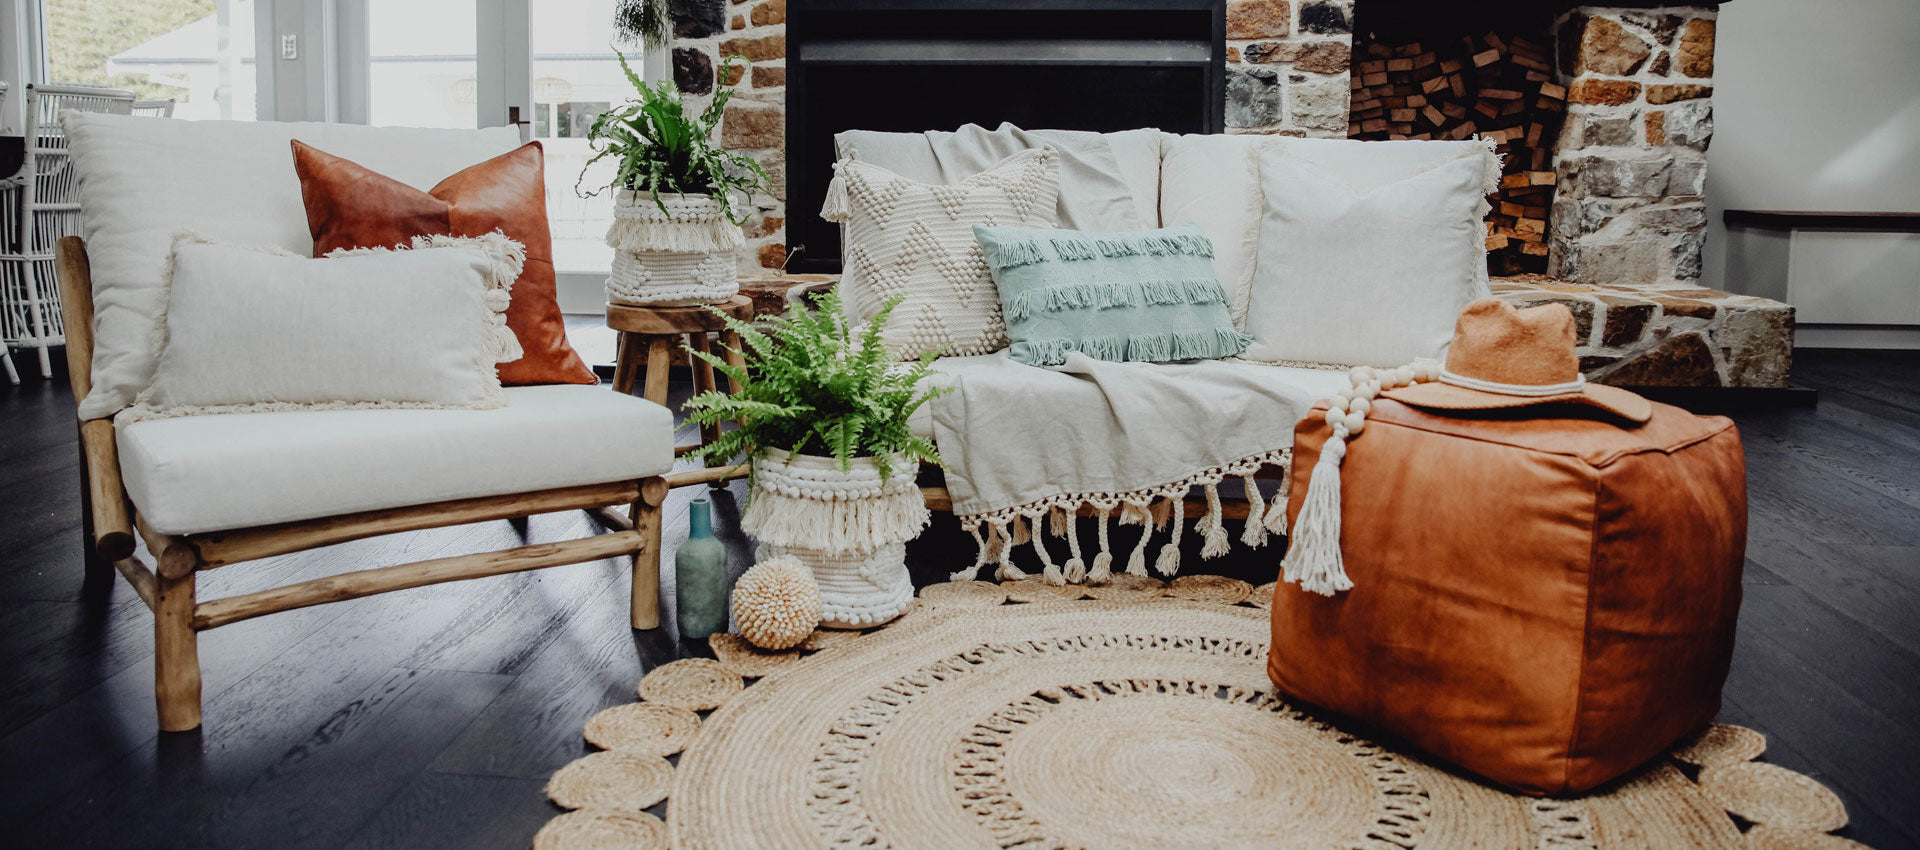 Sea Tribe Coastal Bohemian Furniture Homeware Accessories